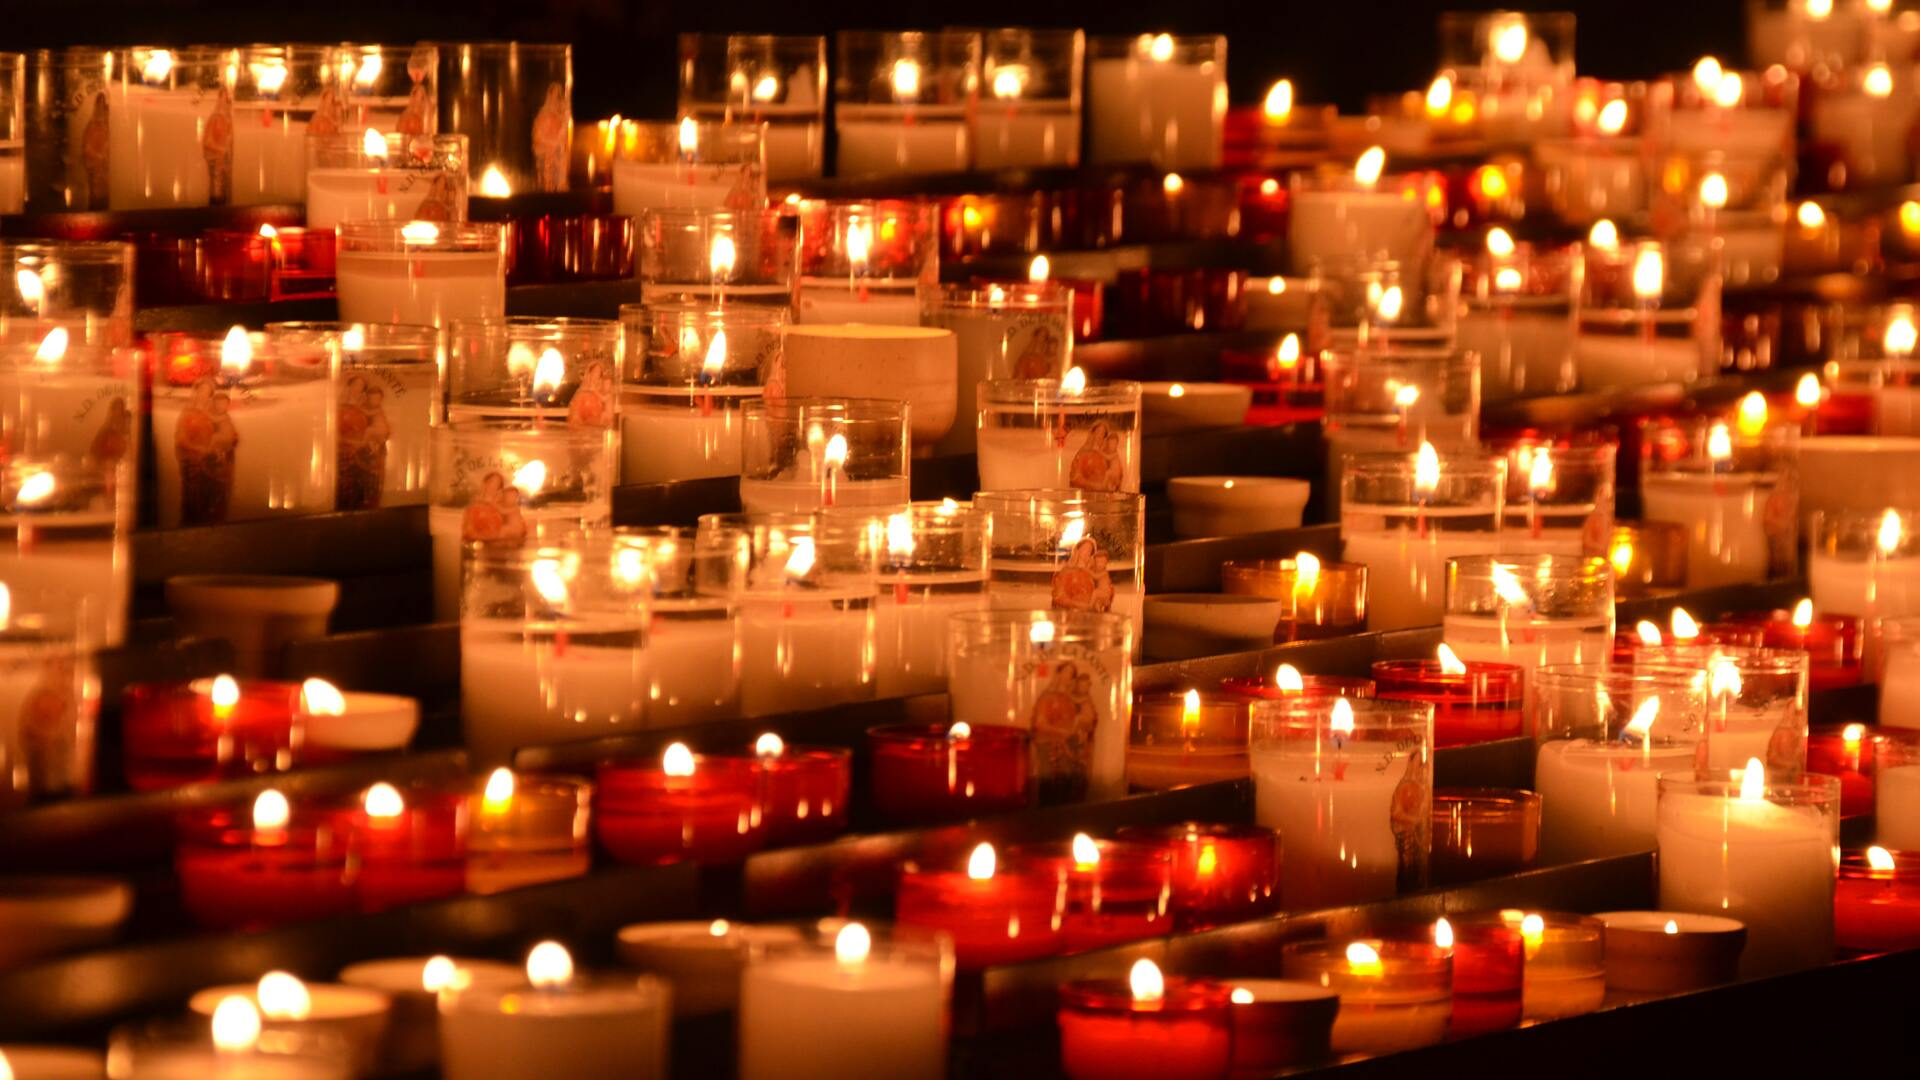 Festivals of Lights: How the Candles and Lights of Winter Holidays Illuminate the Dark